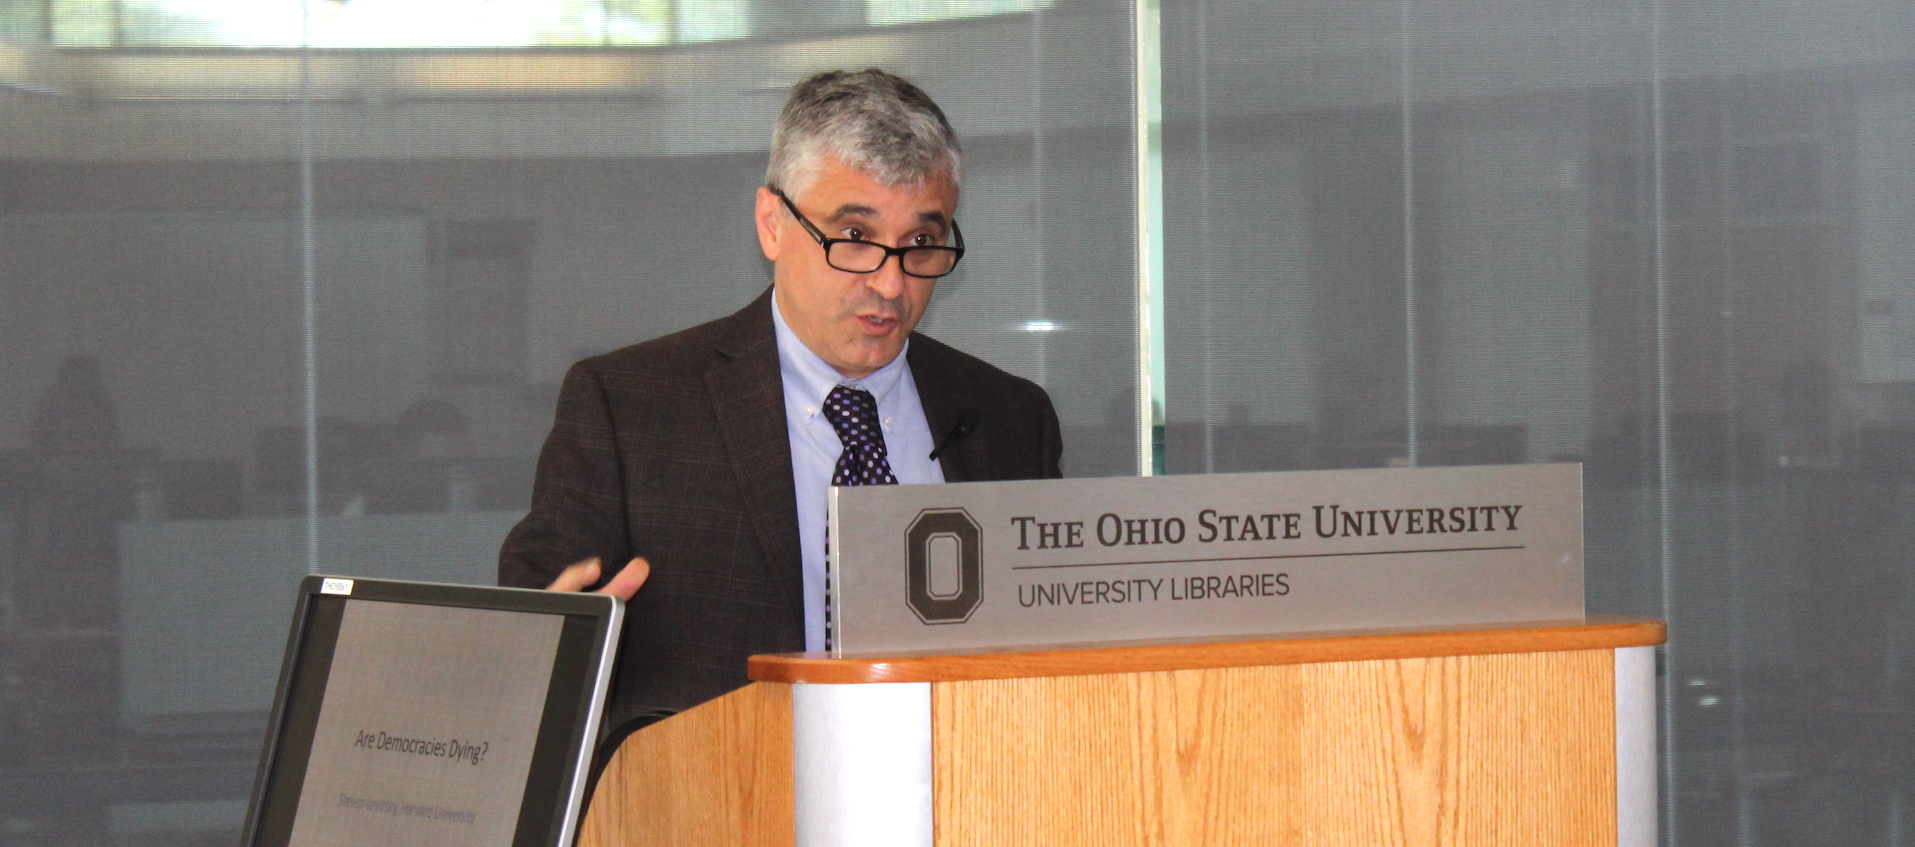 A white man with salt and pepper hair and black rimmed glasses speaks at a wooden podium topped by a gray sign with Ohio State University branding